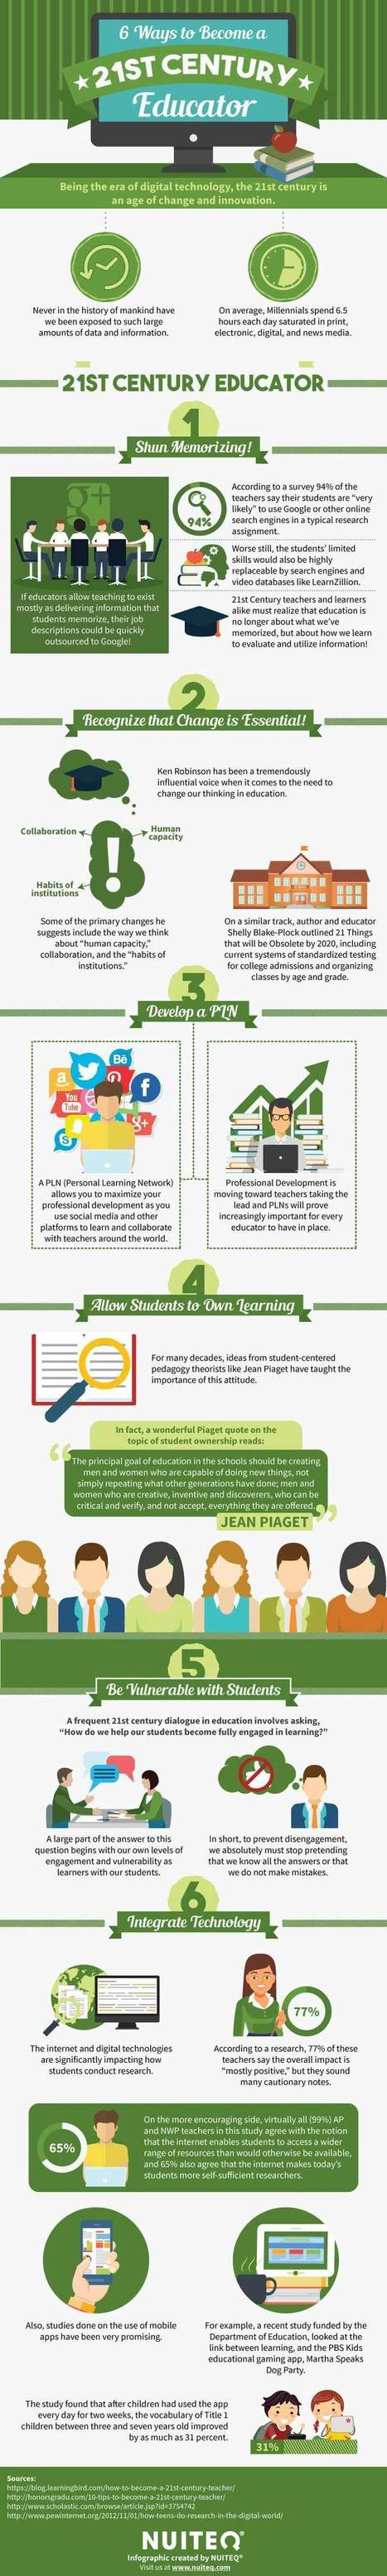 6 Ways to Become a 21st Century Teacher Infographic - e-Learning Infographics | Tecnologias educativas (para aprender... para formar) | Scoop.it